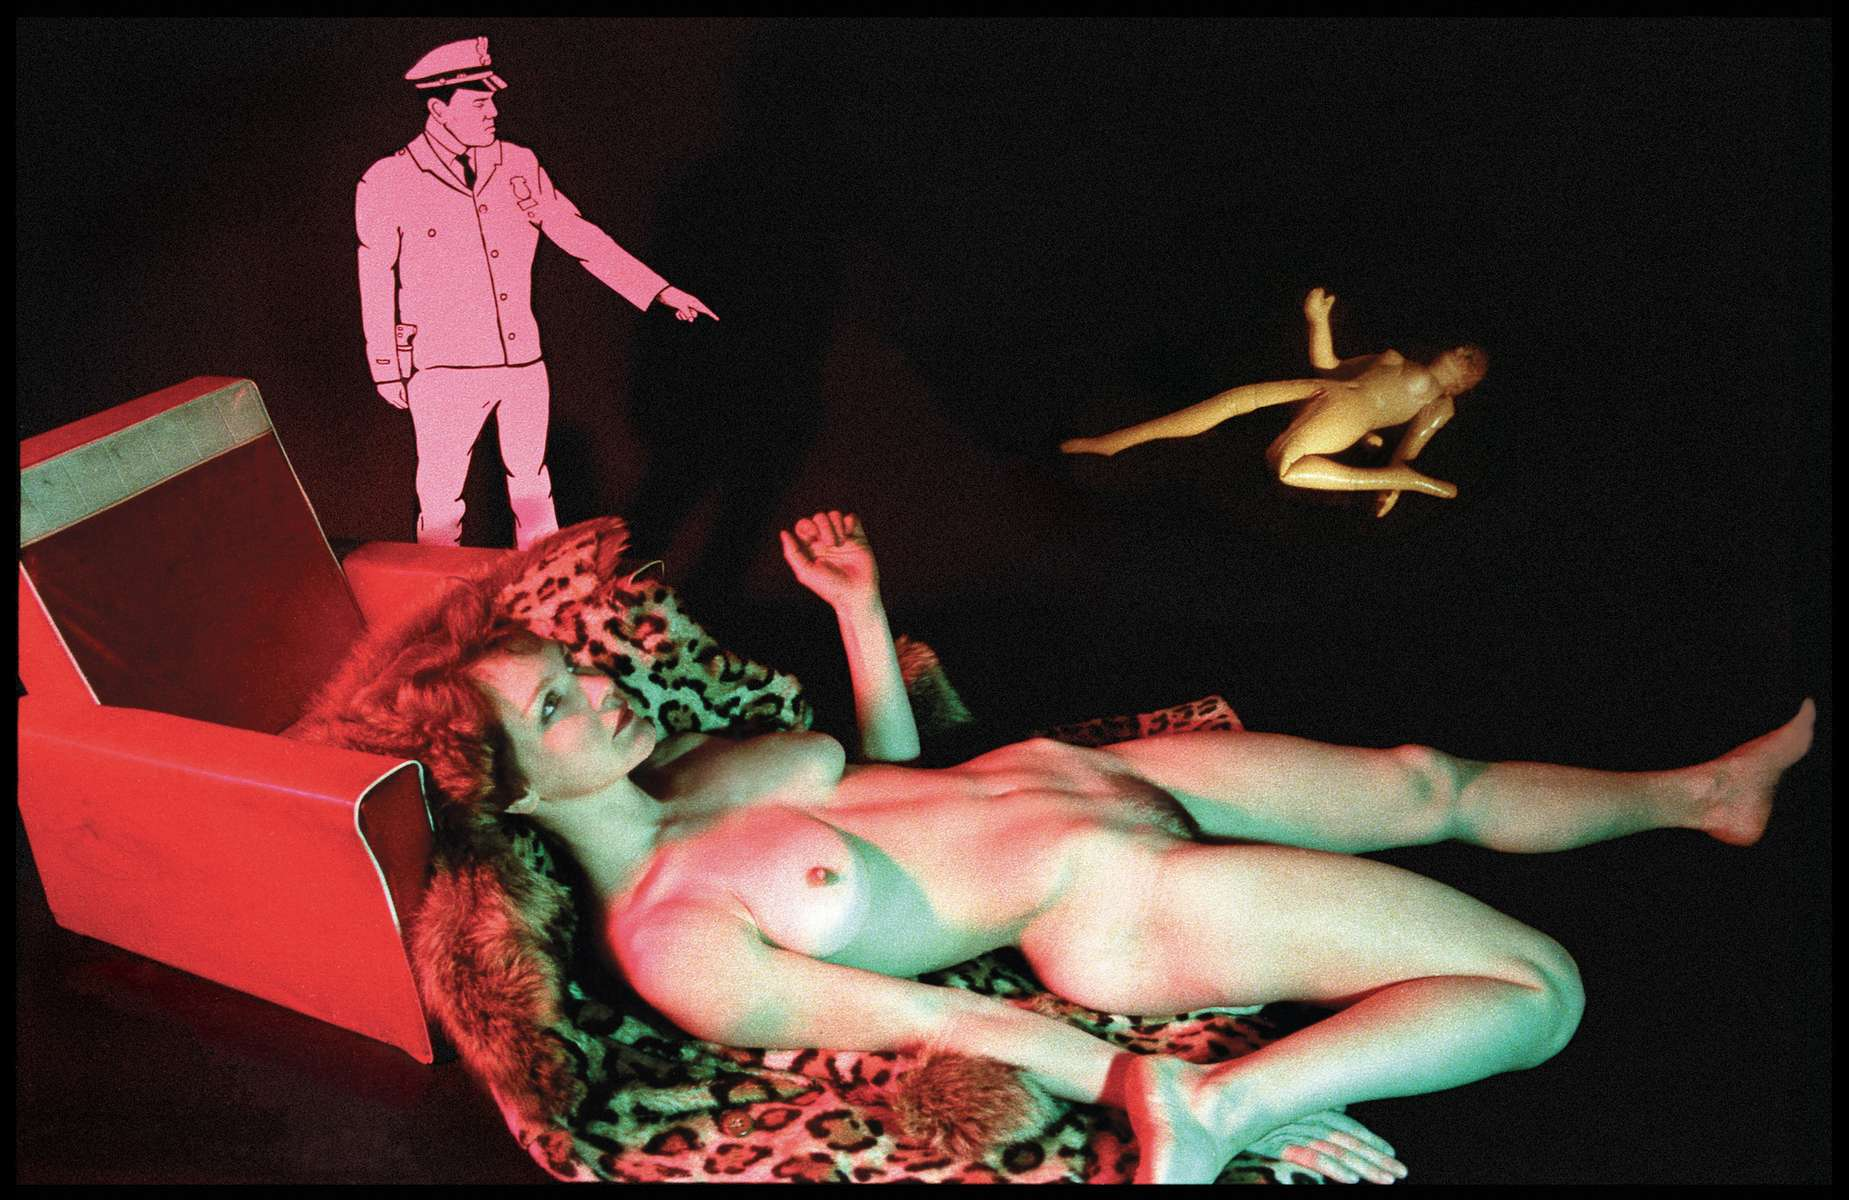 Missionary Position, 1984, Chicago, IL